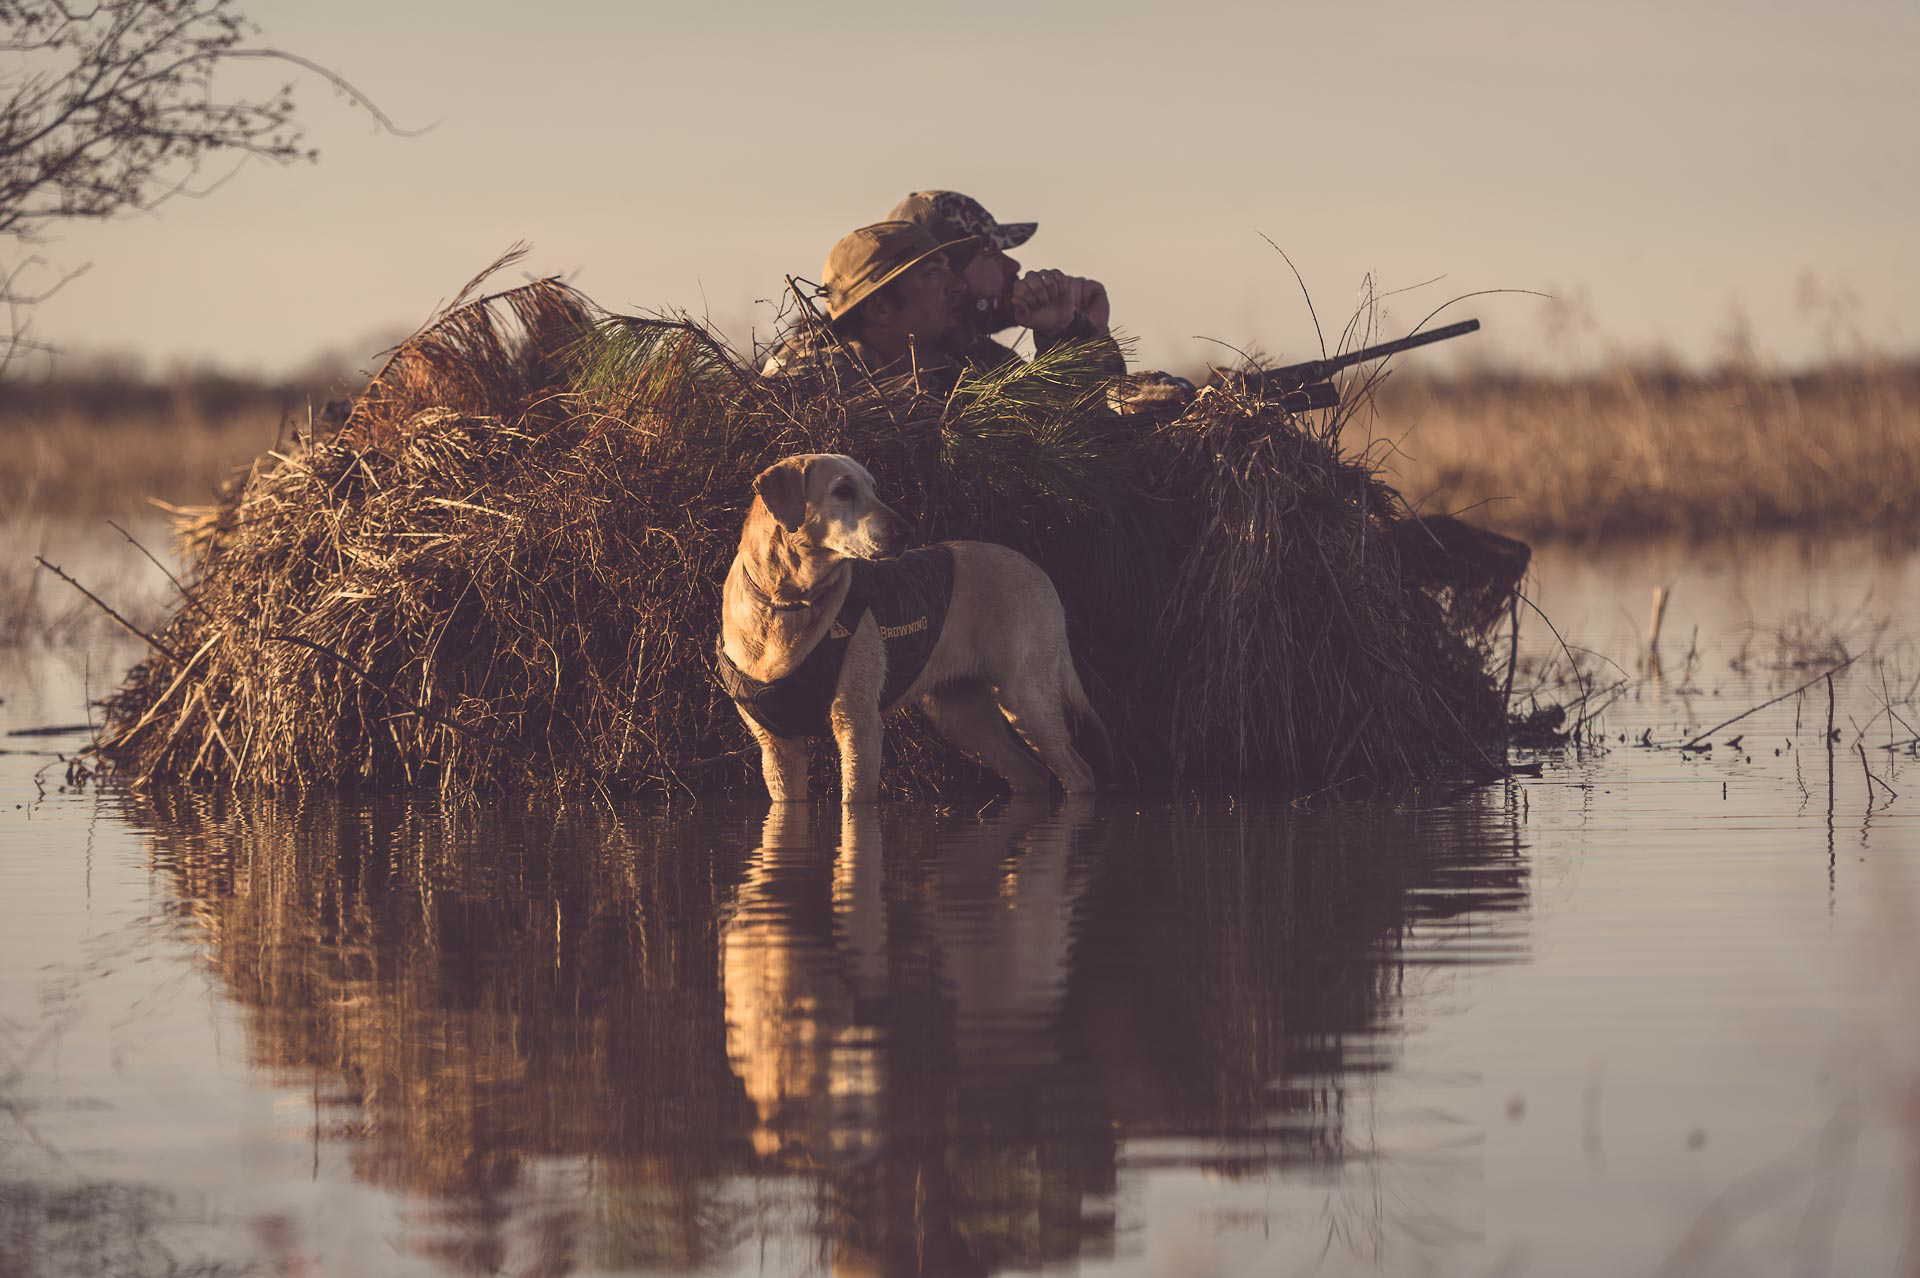 Yellow lab standing in a marsh next to a duck blind with hunters. © Tony Bynum